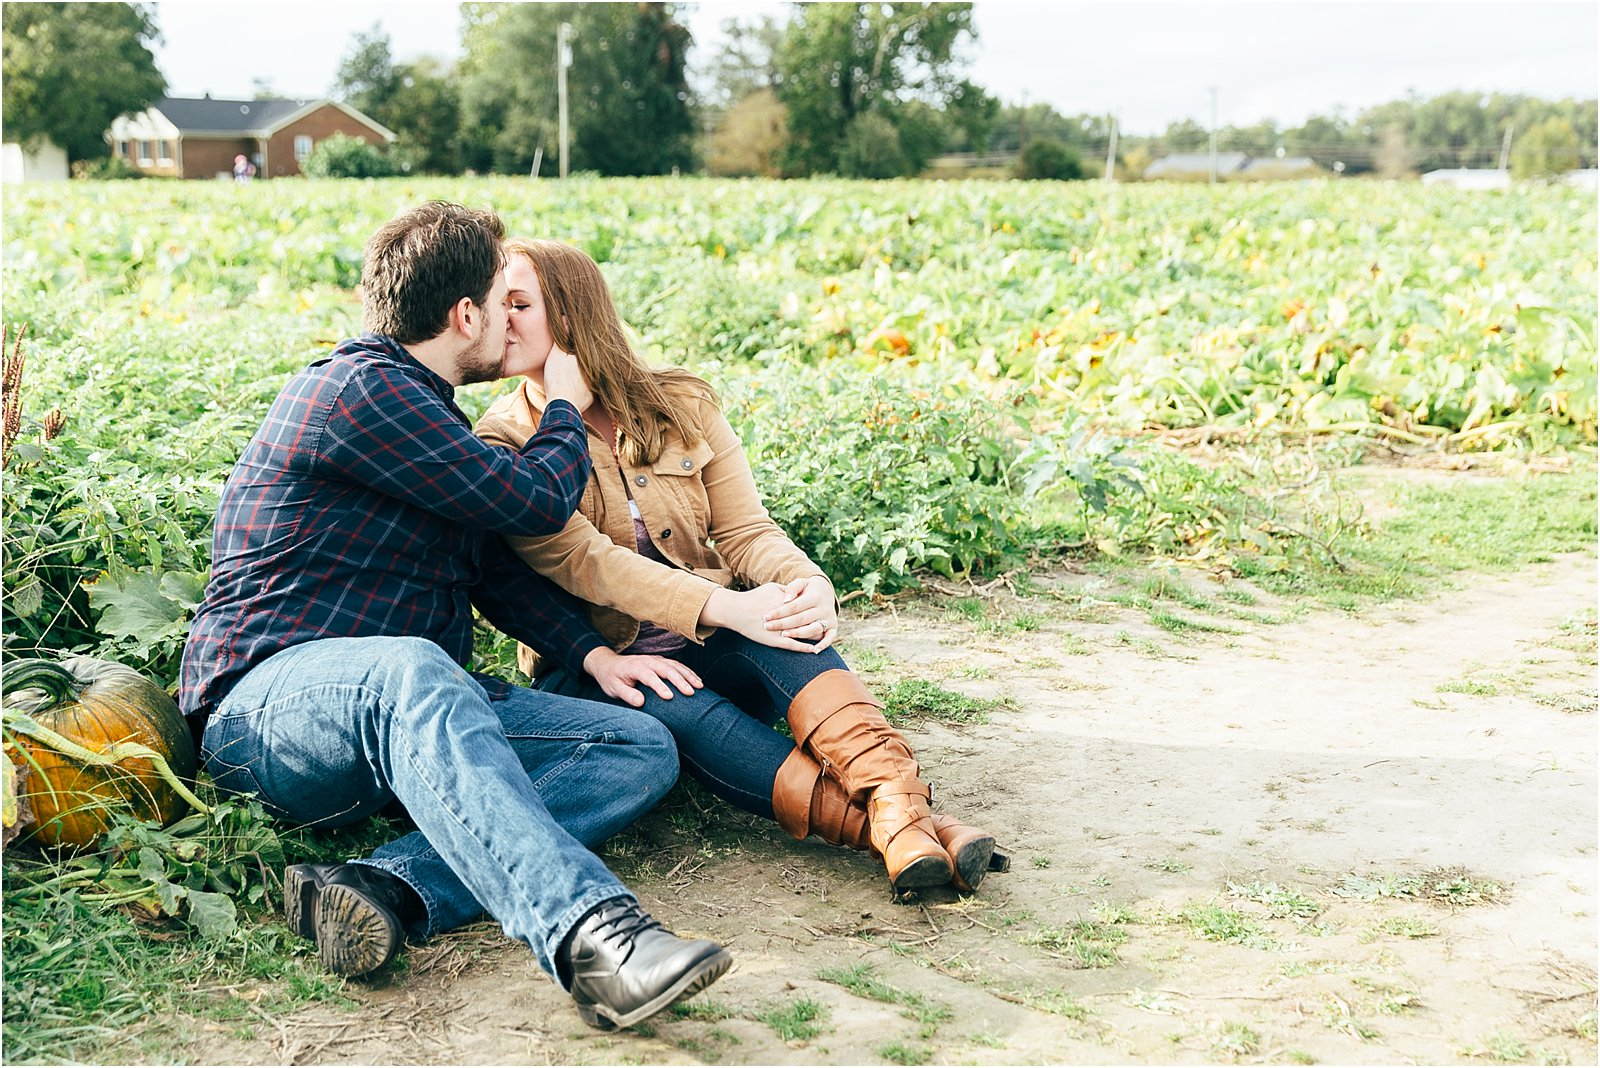 jessica_ryan_photography_pumpkin_patch_engagement_portraits_fall_october_engagements_virginia_beach_chesapeake_0276